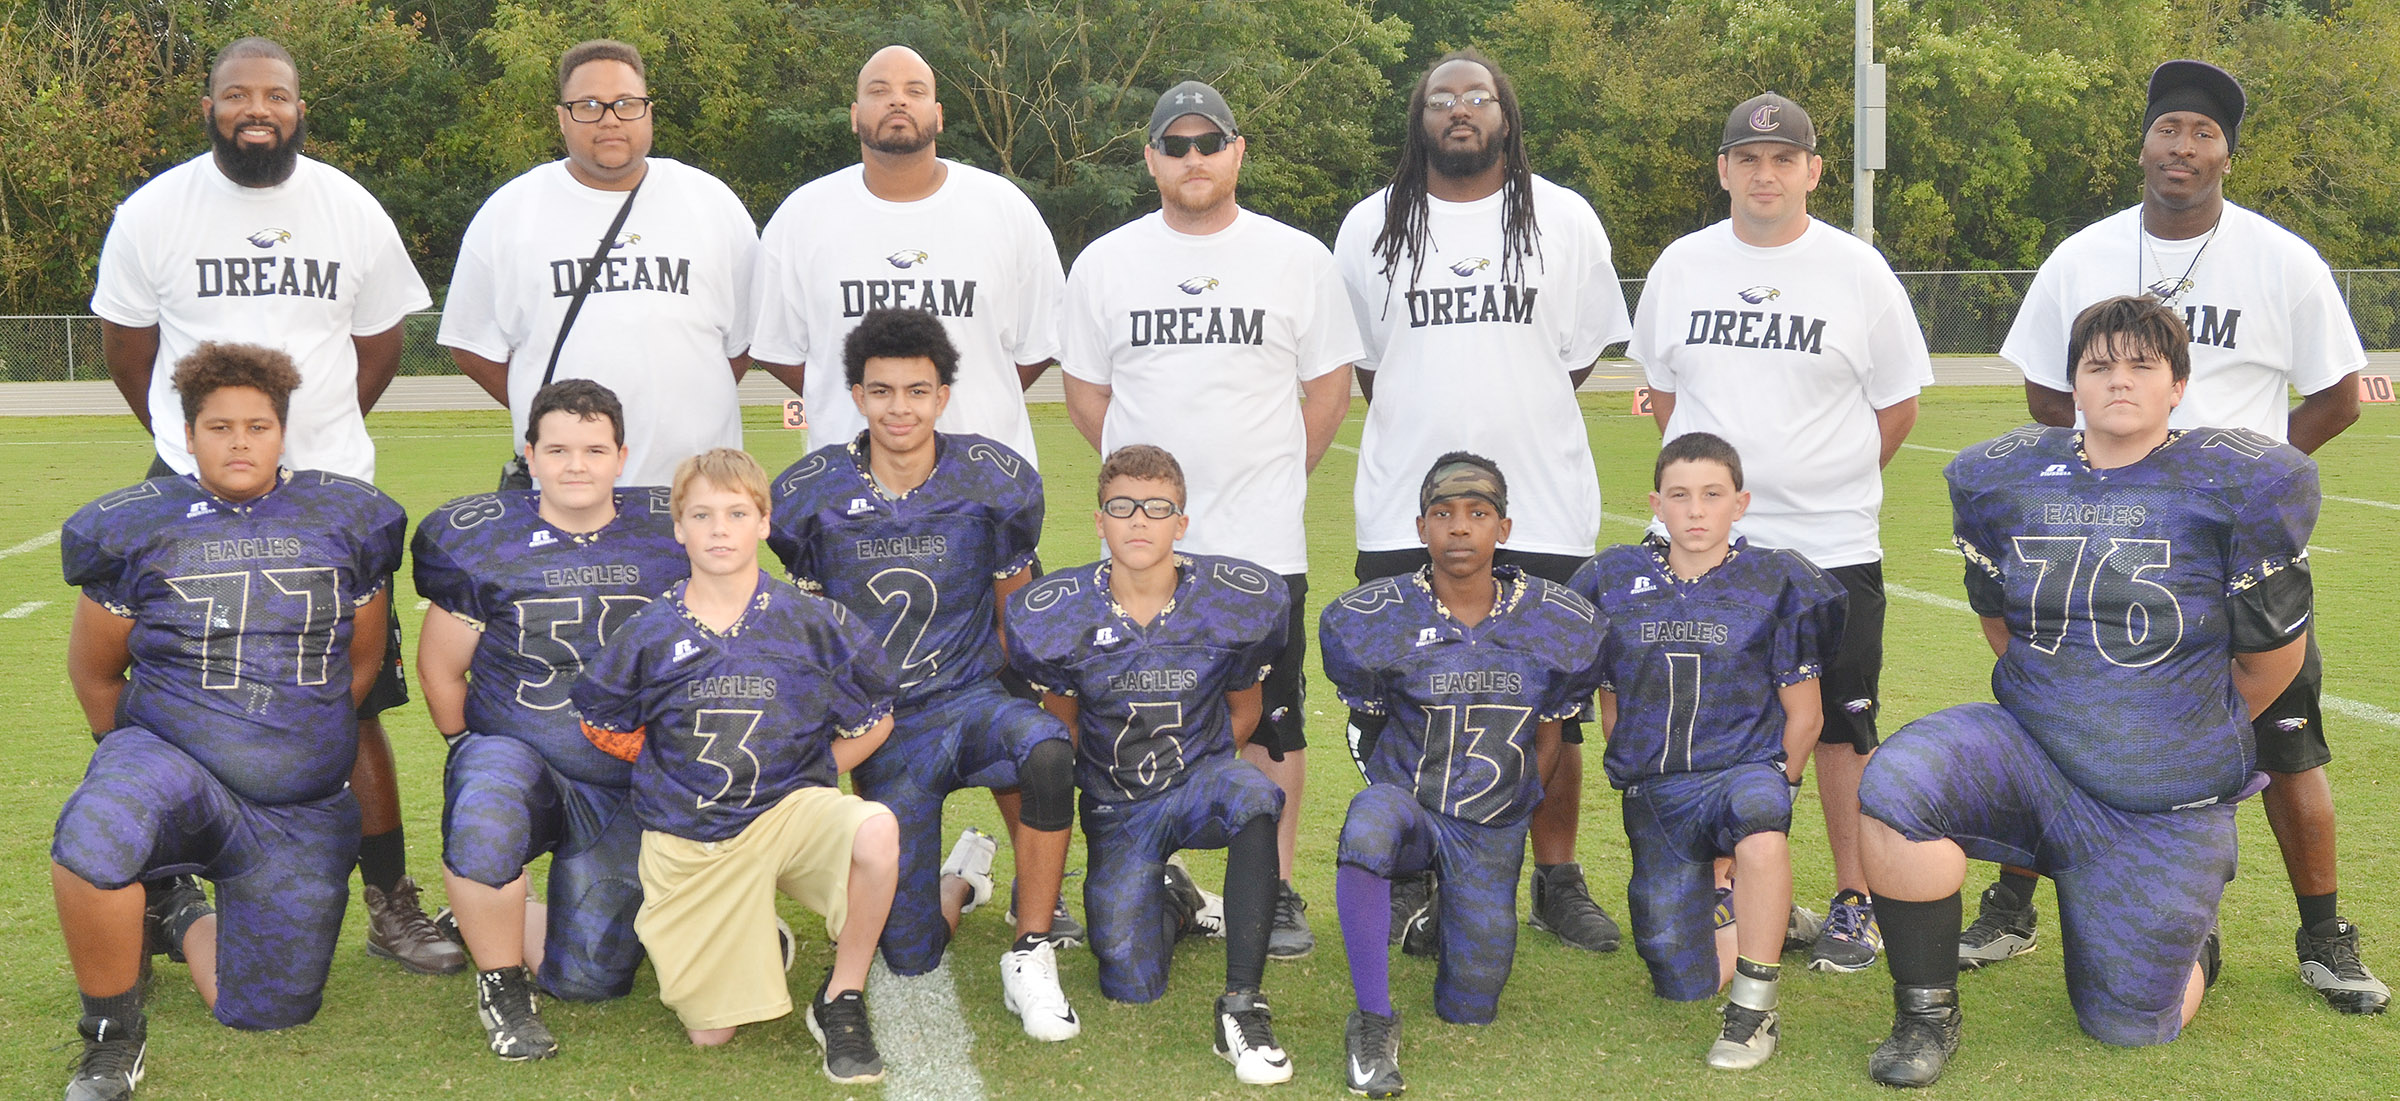 This year's eighth-grade CMS football players were recently honored for their dedication and hard work this season. From left are eighth-graders Brandon Pittman, Adin Hunt, Tuff Harper, Adrien Smith, Logan Phillips, Jadan Furman, Dakota Harris and Logan Rakes. Back, assistant coaches Will Griffin and Bronson Gowdy, head coach Aaron Webb and assistant coaches Isaiah Perkins, Shumari Bridgewater, Tommy Allen and John Gholston.